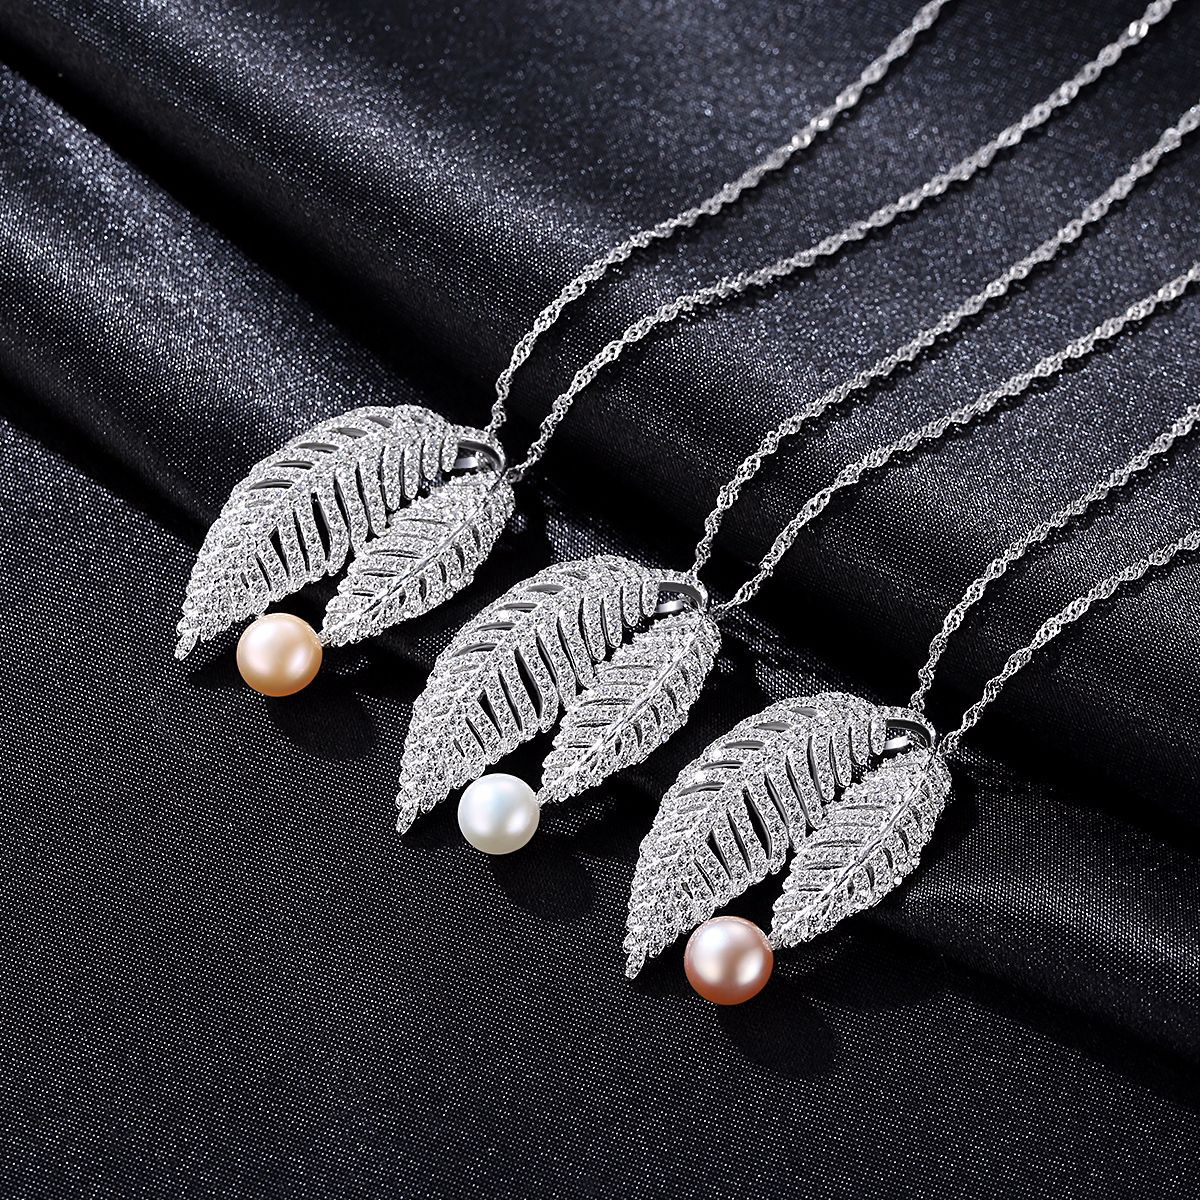 Necklace S925 Sterling Silver Fashion Leaf shaped Natural Freshwater Pearl Necklace Pendant for Women Wedding Gift in Pendants from Jewelry Accessories